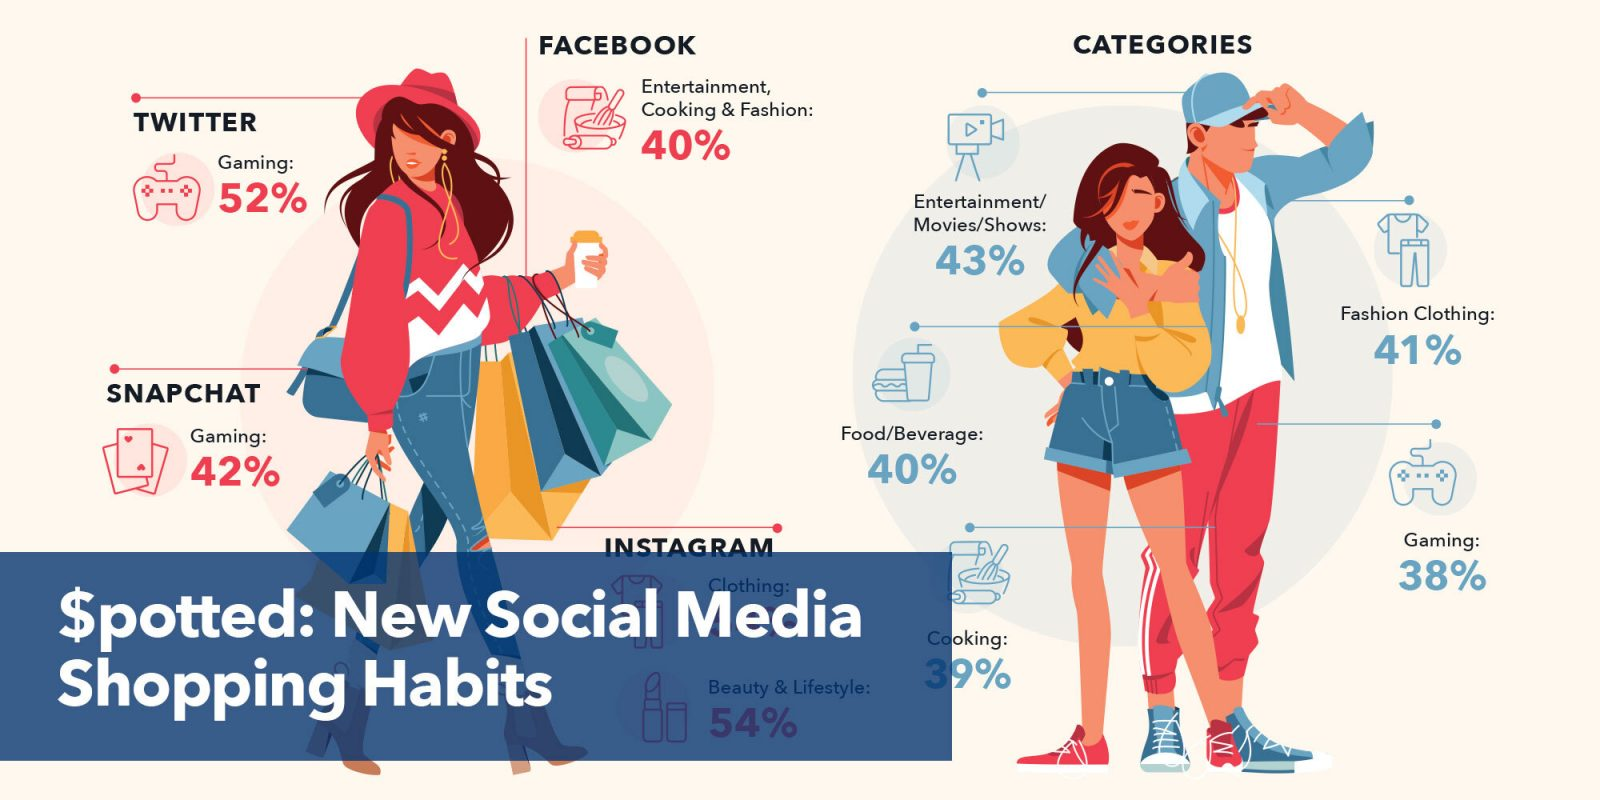 $potted: new social media shopping habits.